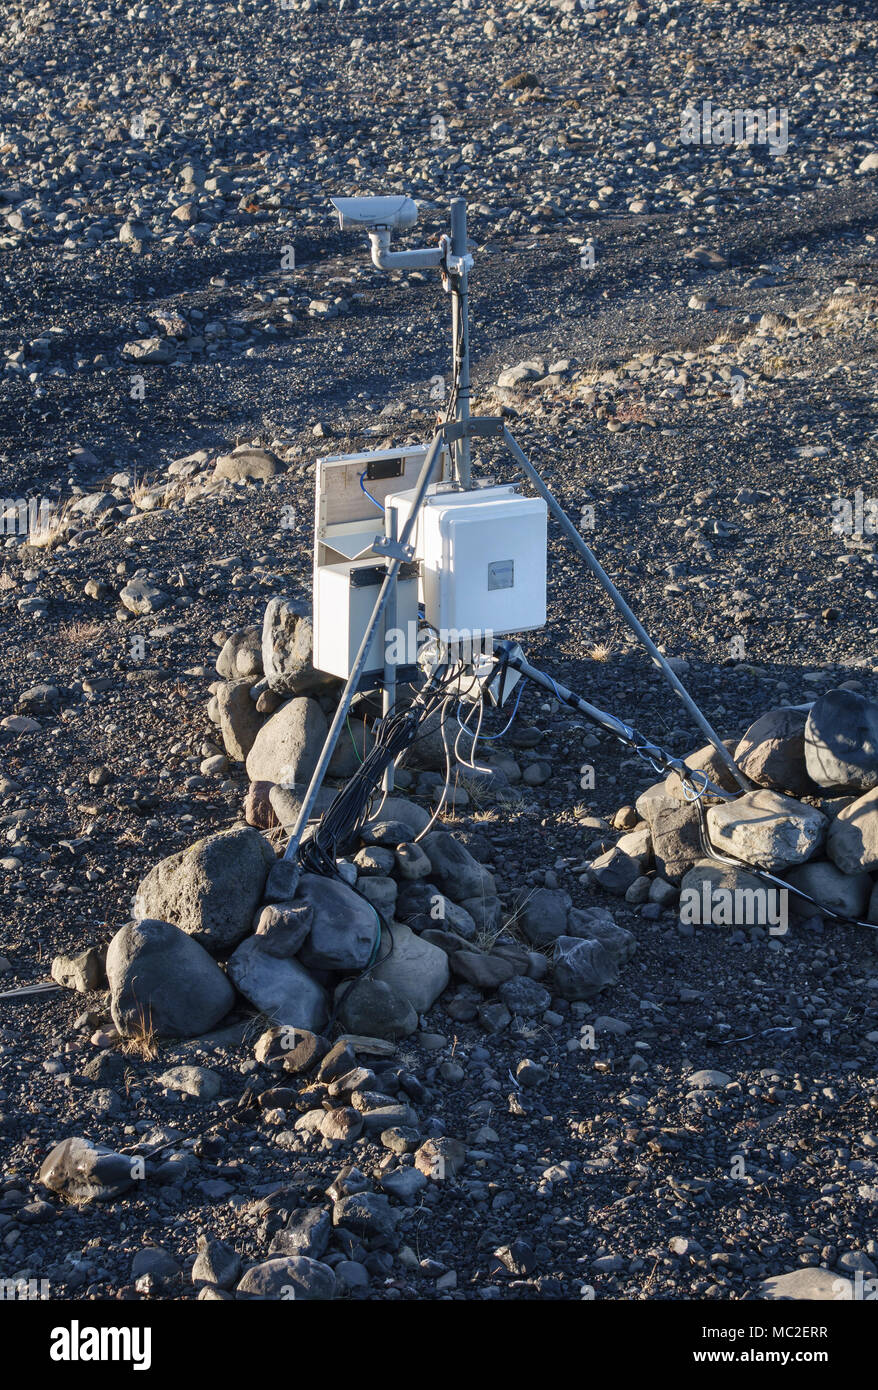 South Iceland. Geological monitoring equipment used to detect earth movements and give advance warning of earthquakes or volcanic eruptions - Stock Image